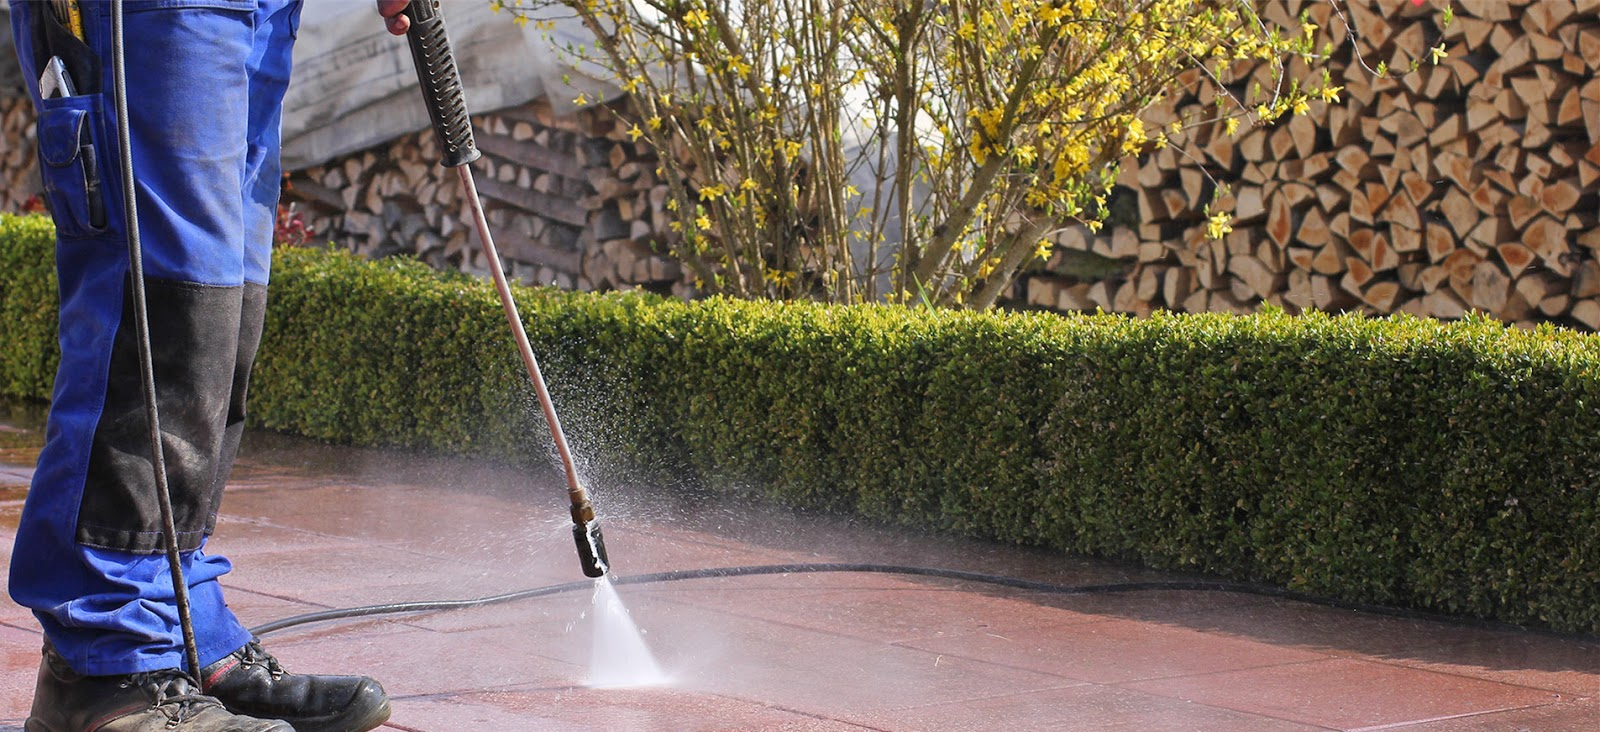 Morck Cleaning Homemade Pressure Washer Cleaning Solution